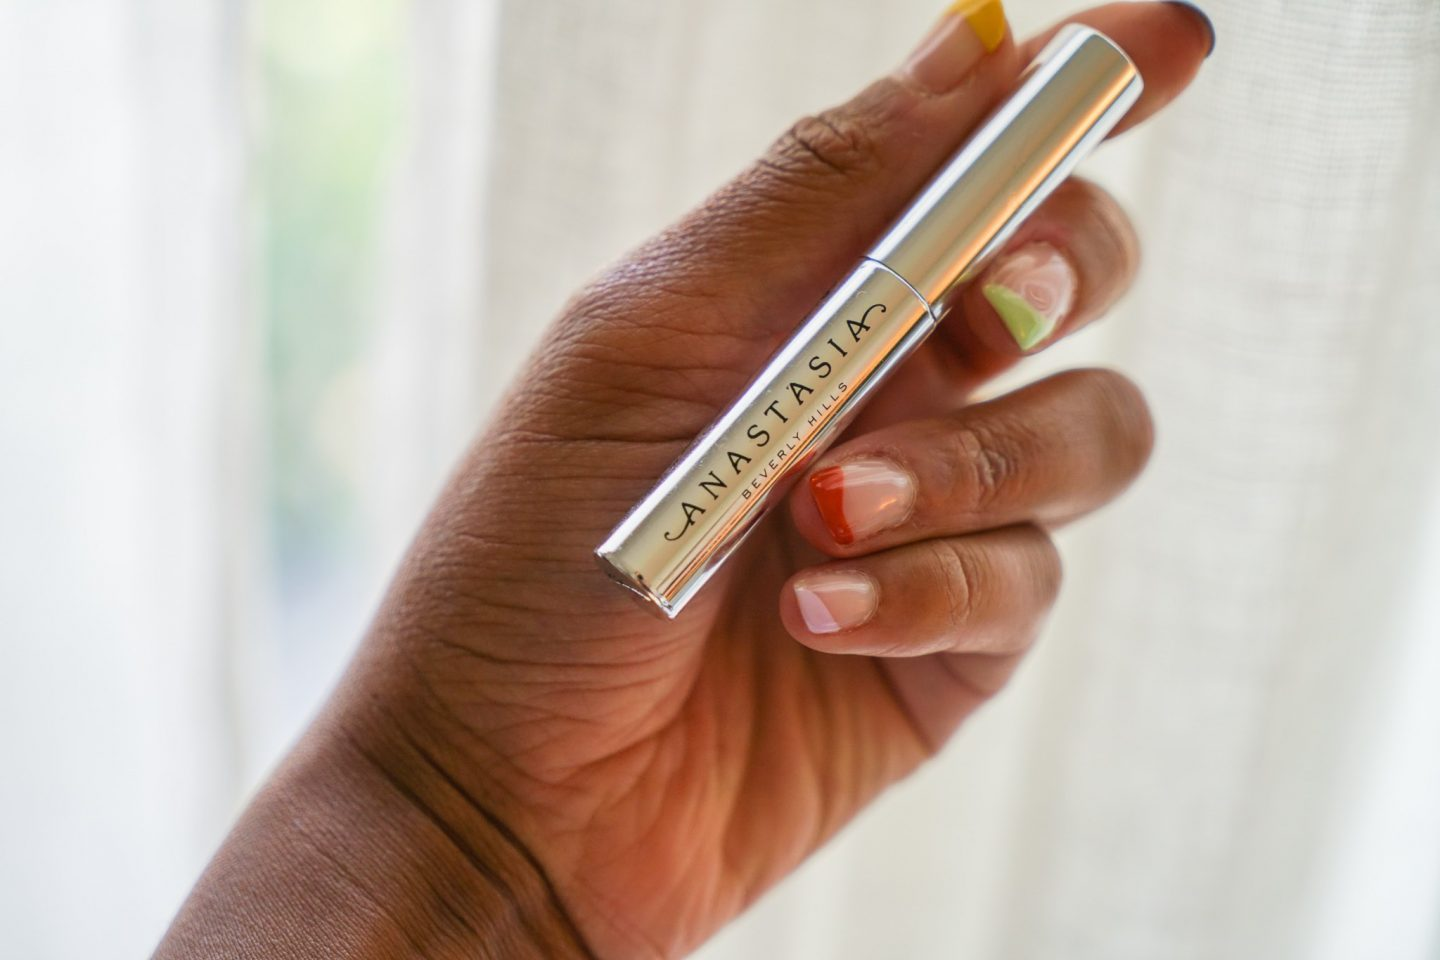 Anastasia Beauty Makeup beauty favourites of the month